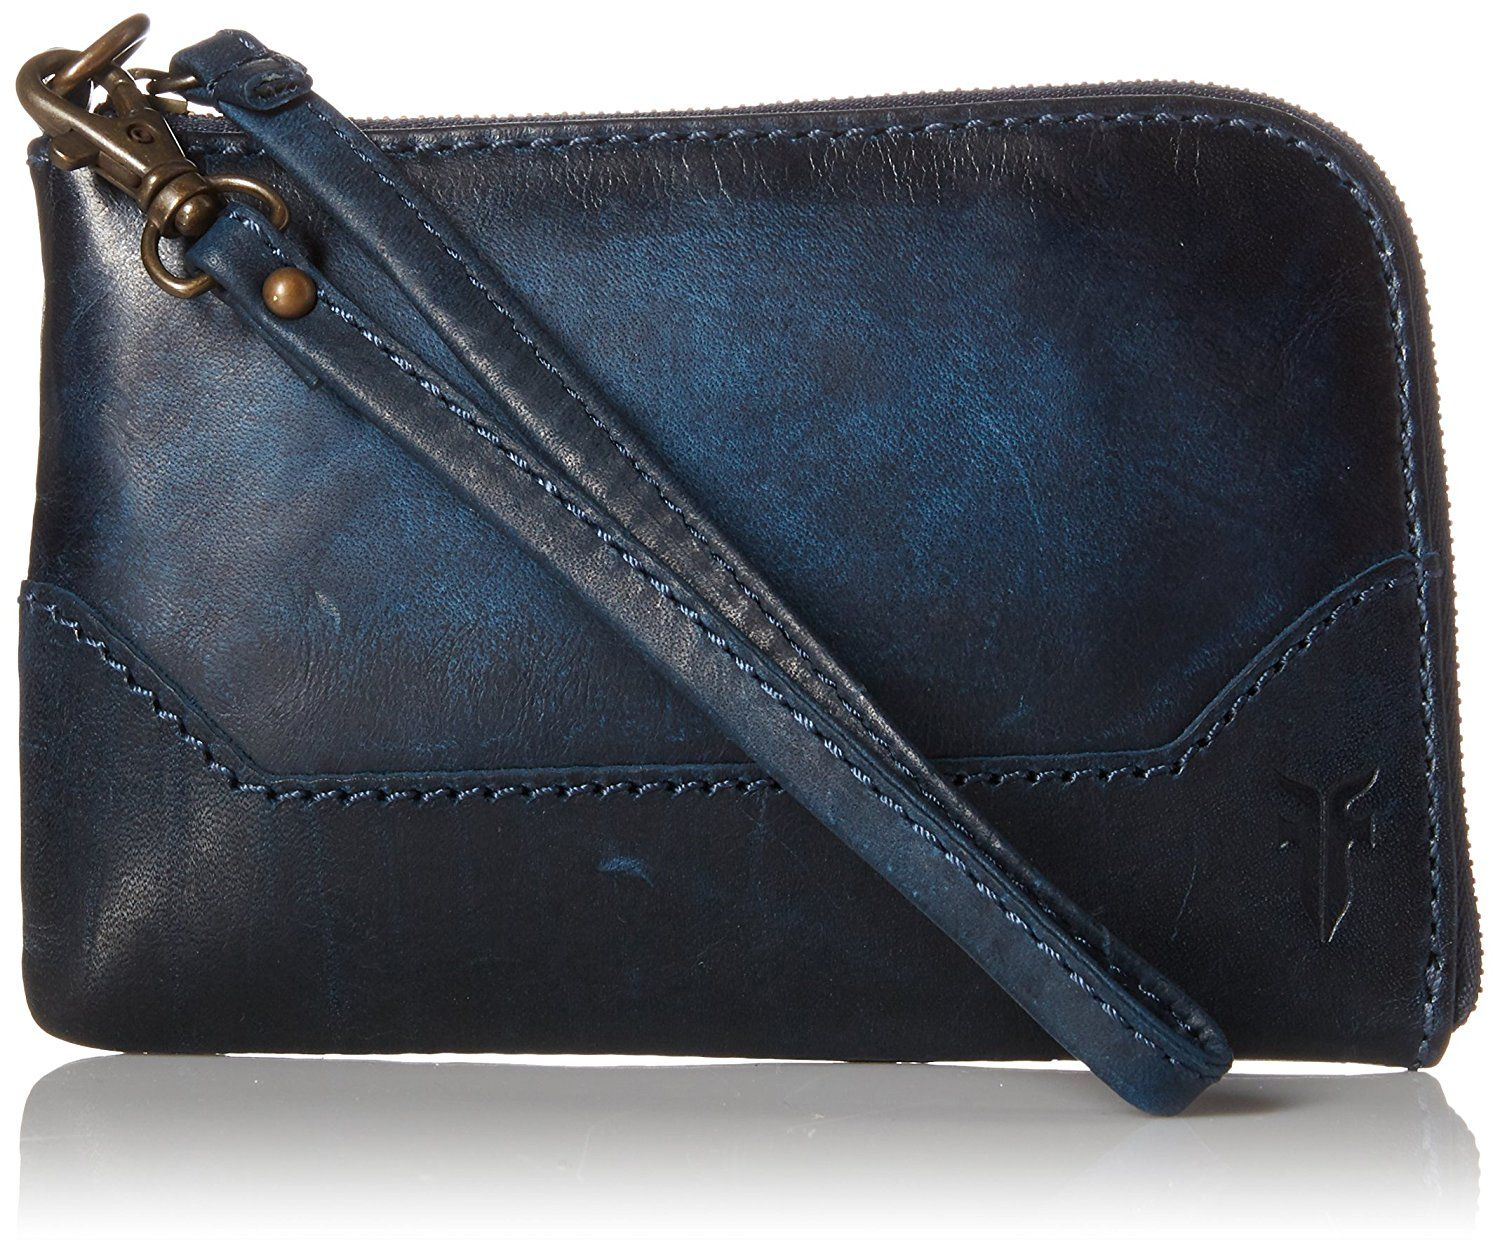 VIDA Leather Statement Clutch - Susan Ringer Fine Art by VIDA